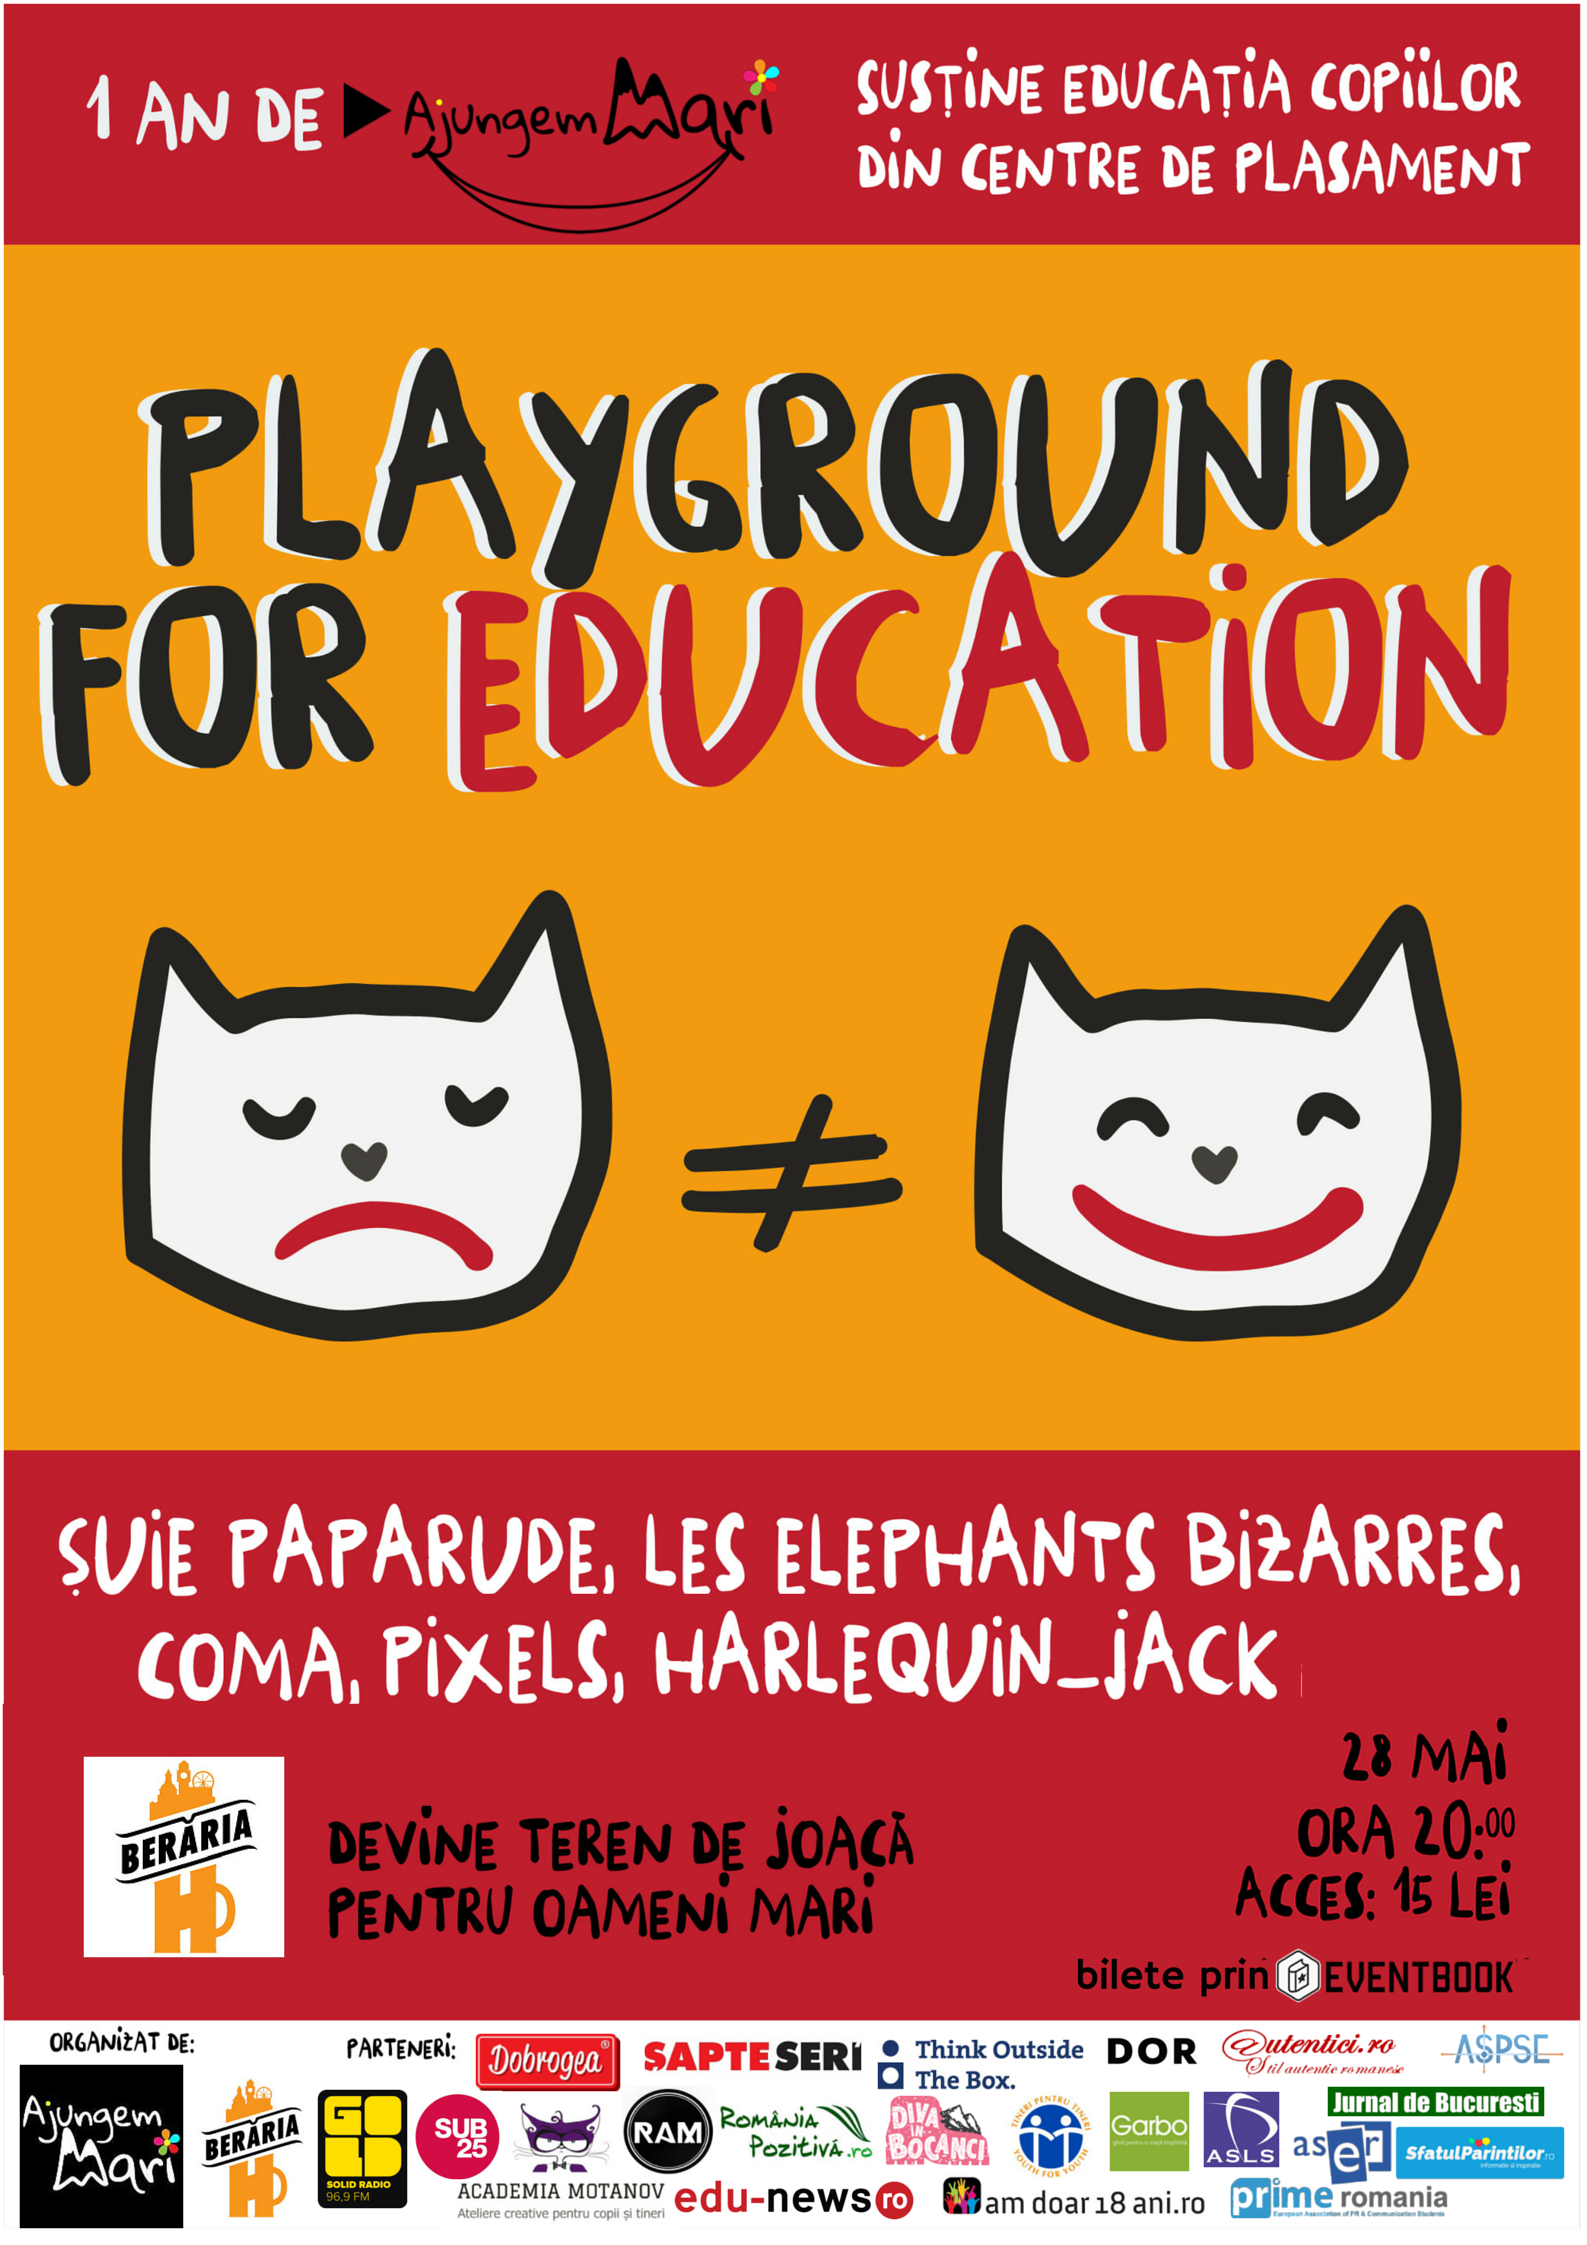 Playground for education – concert aniversar cu multă joacă